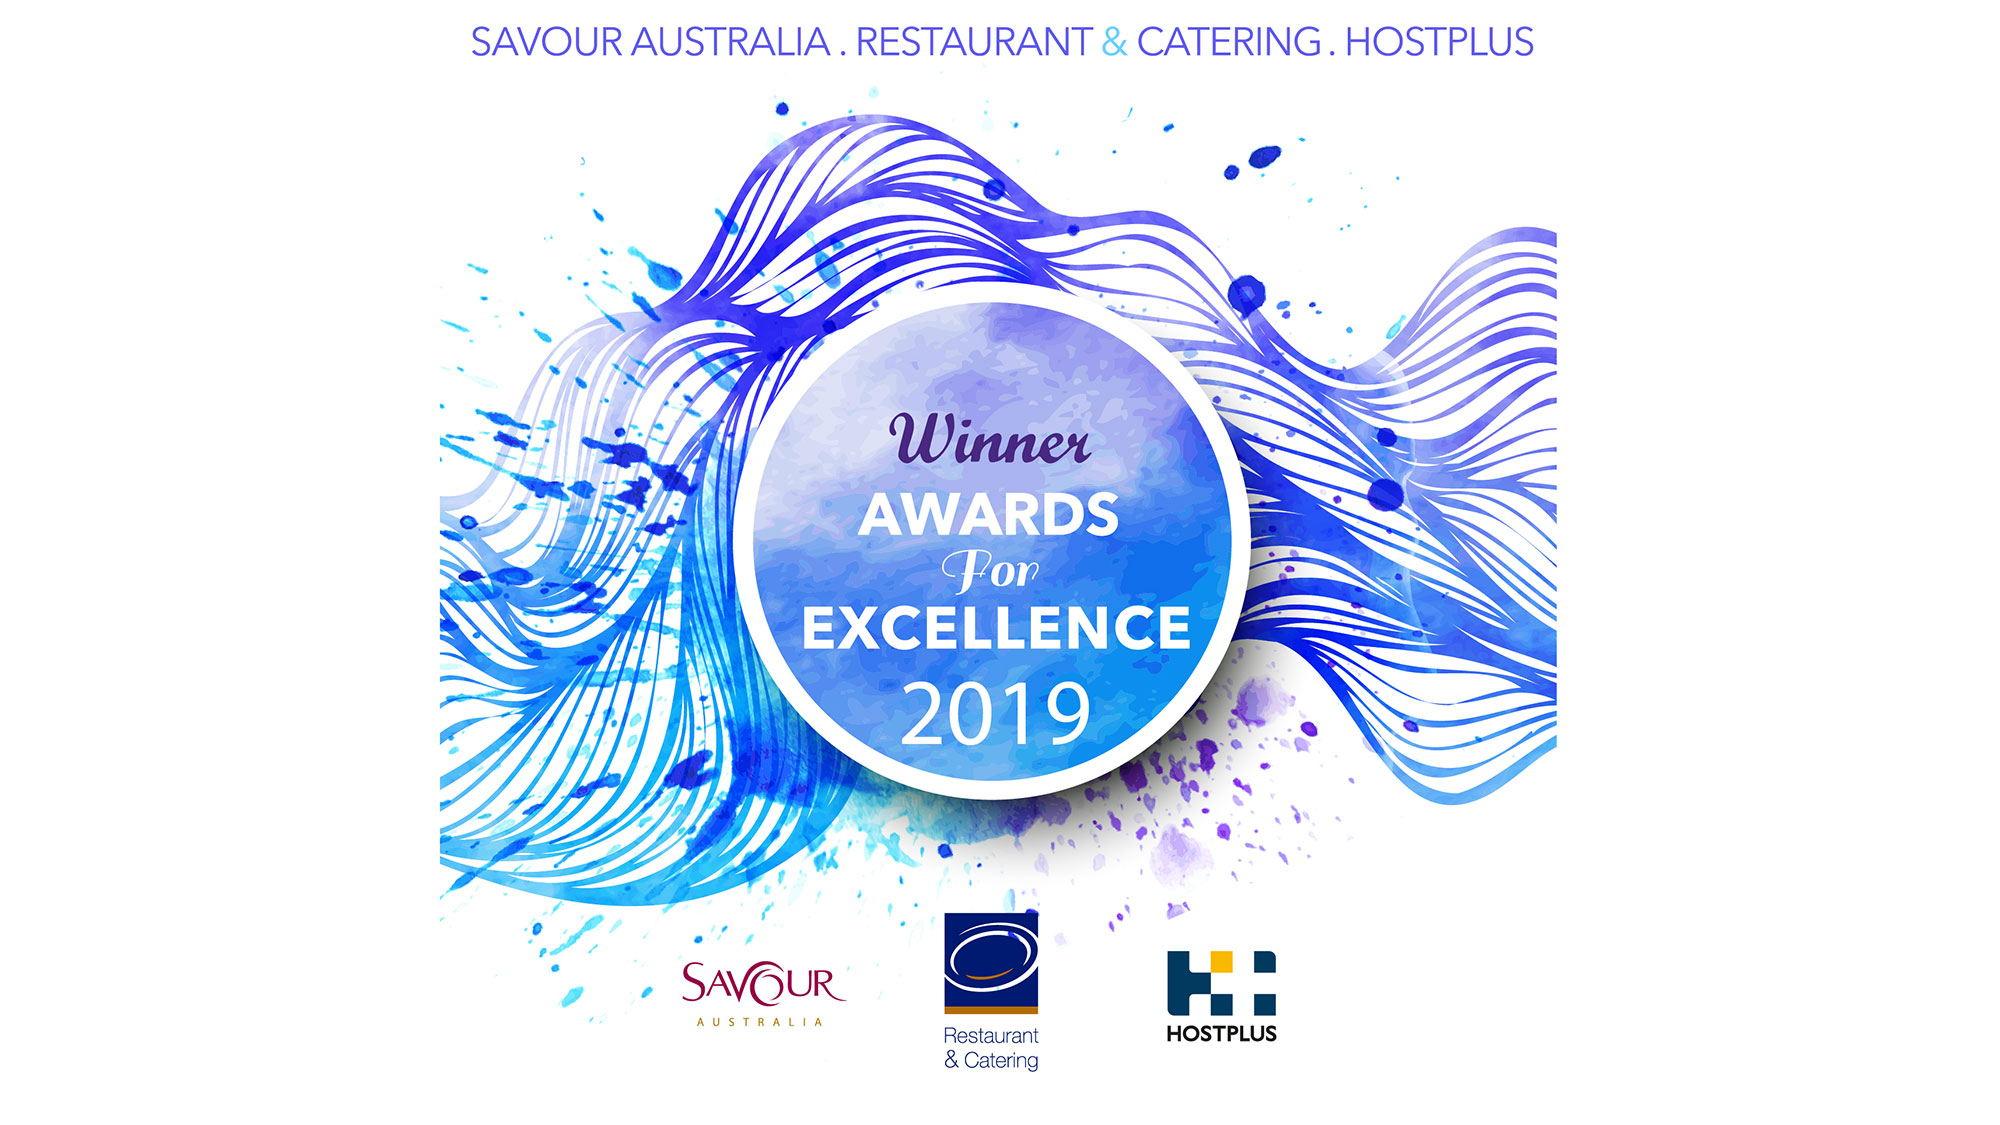 Restaurant & Catering Australia - Awards for Excellence